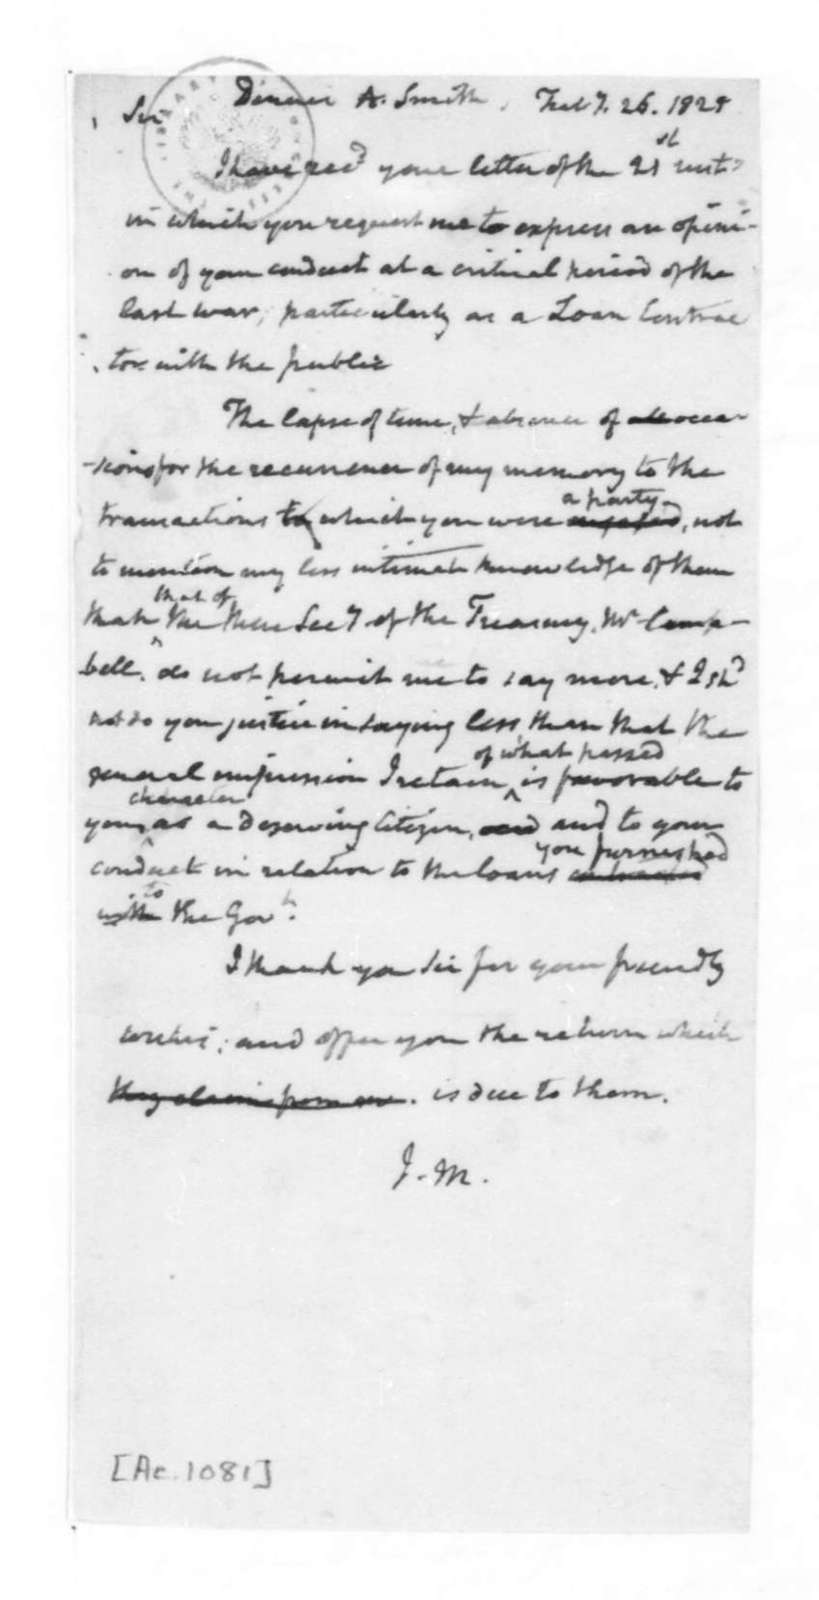 James Madison to D. A. Smith, February 26, 1825.